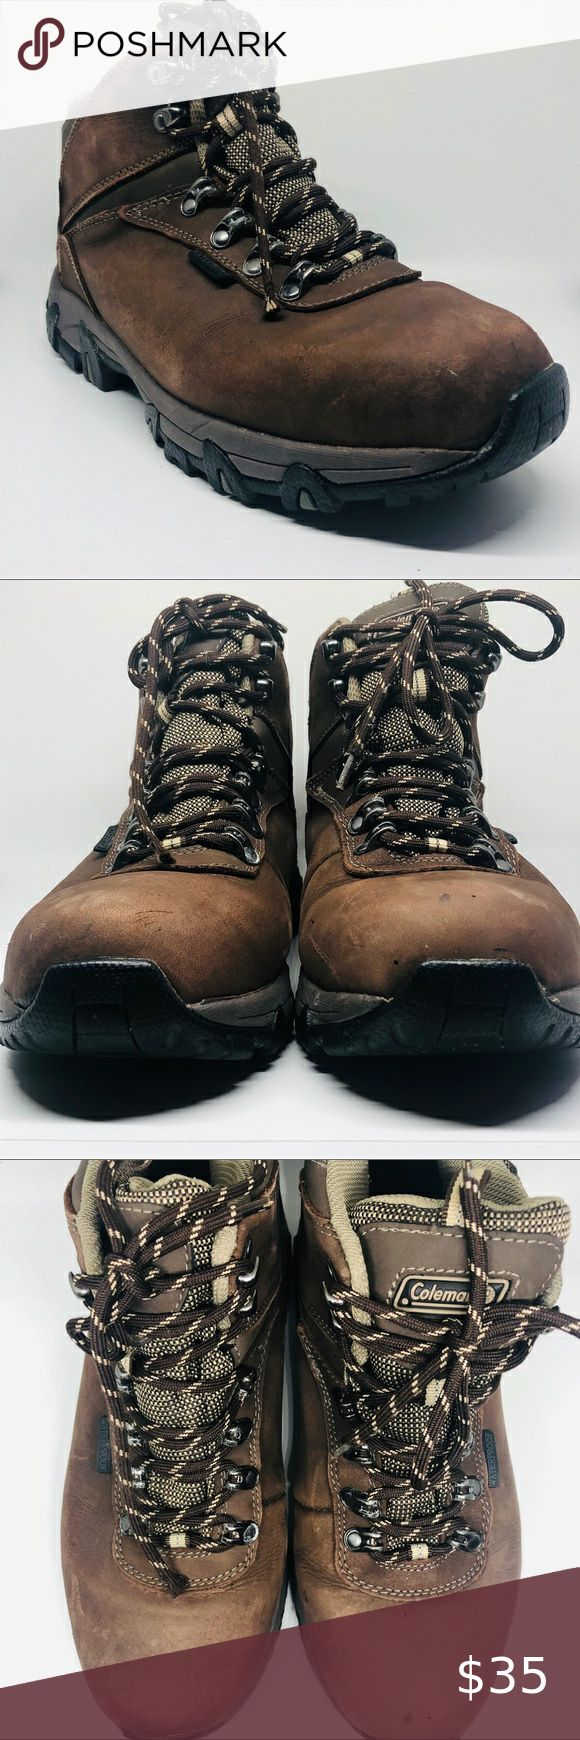 Coleman waterproof, thinsulate, leather boots, 9M in 2020